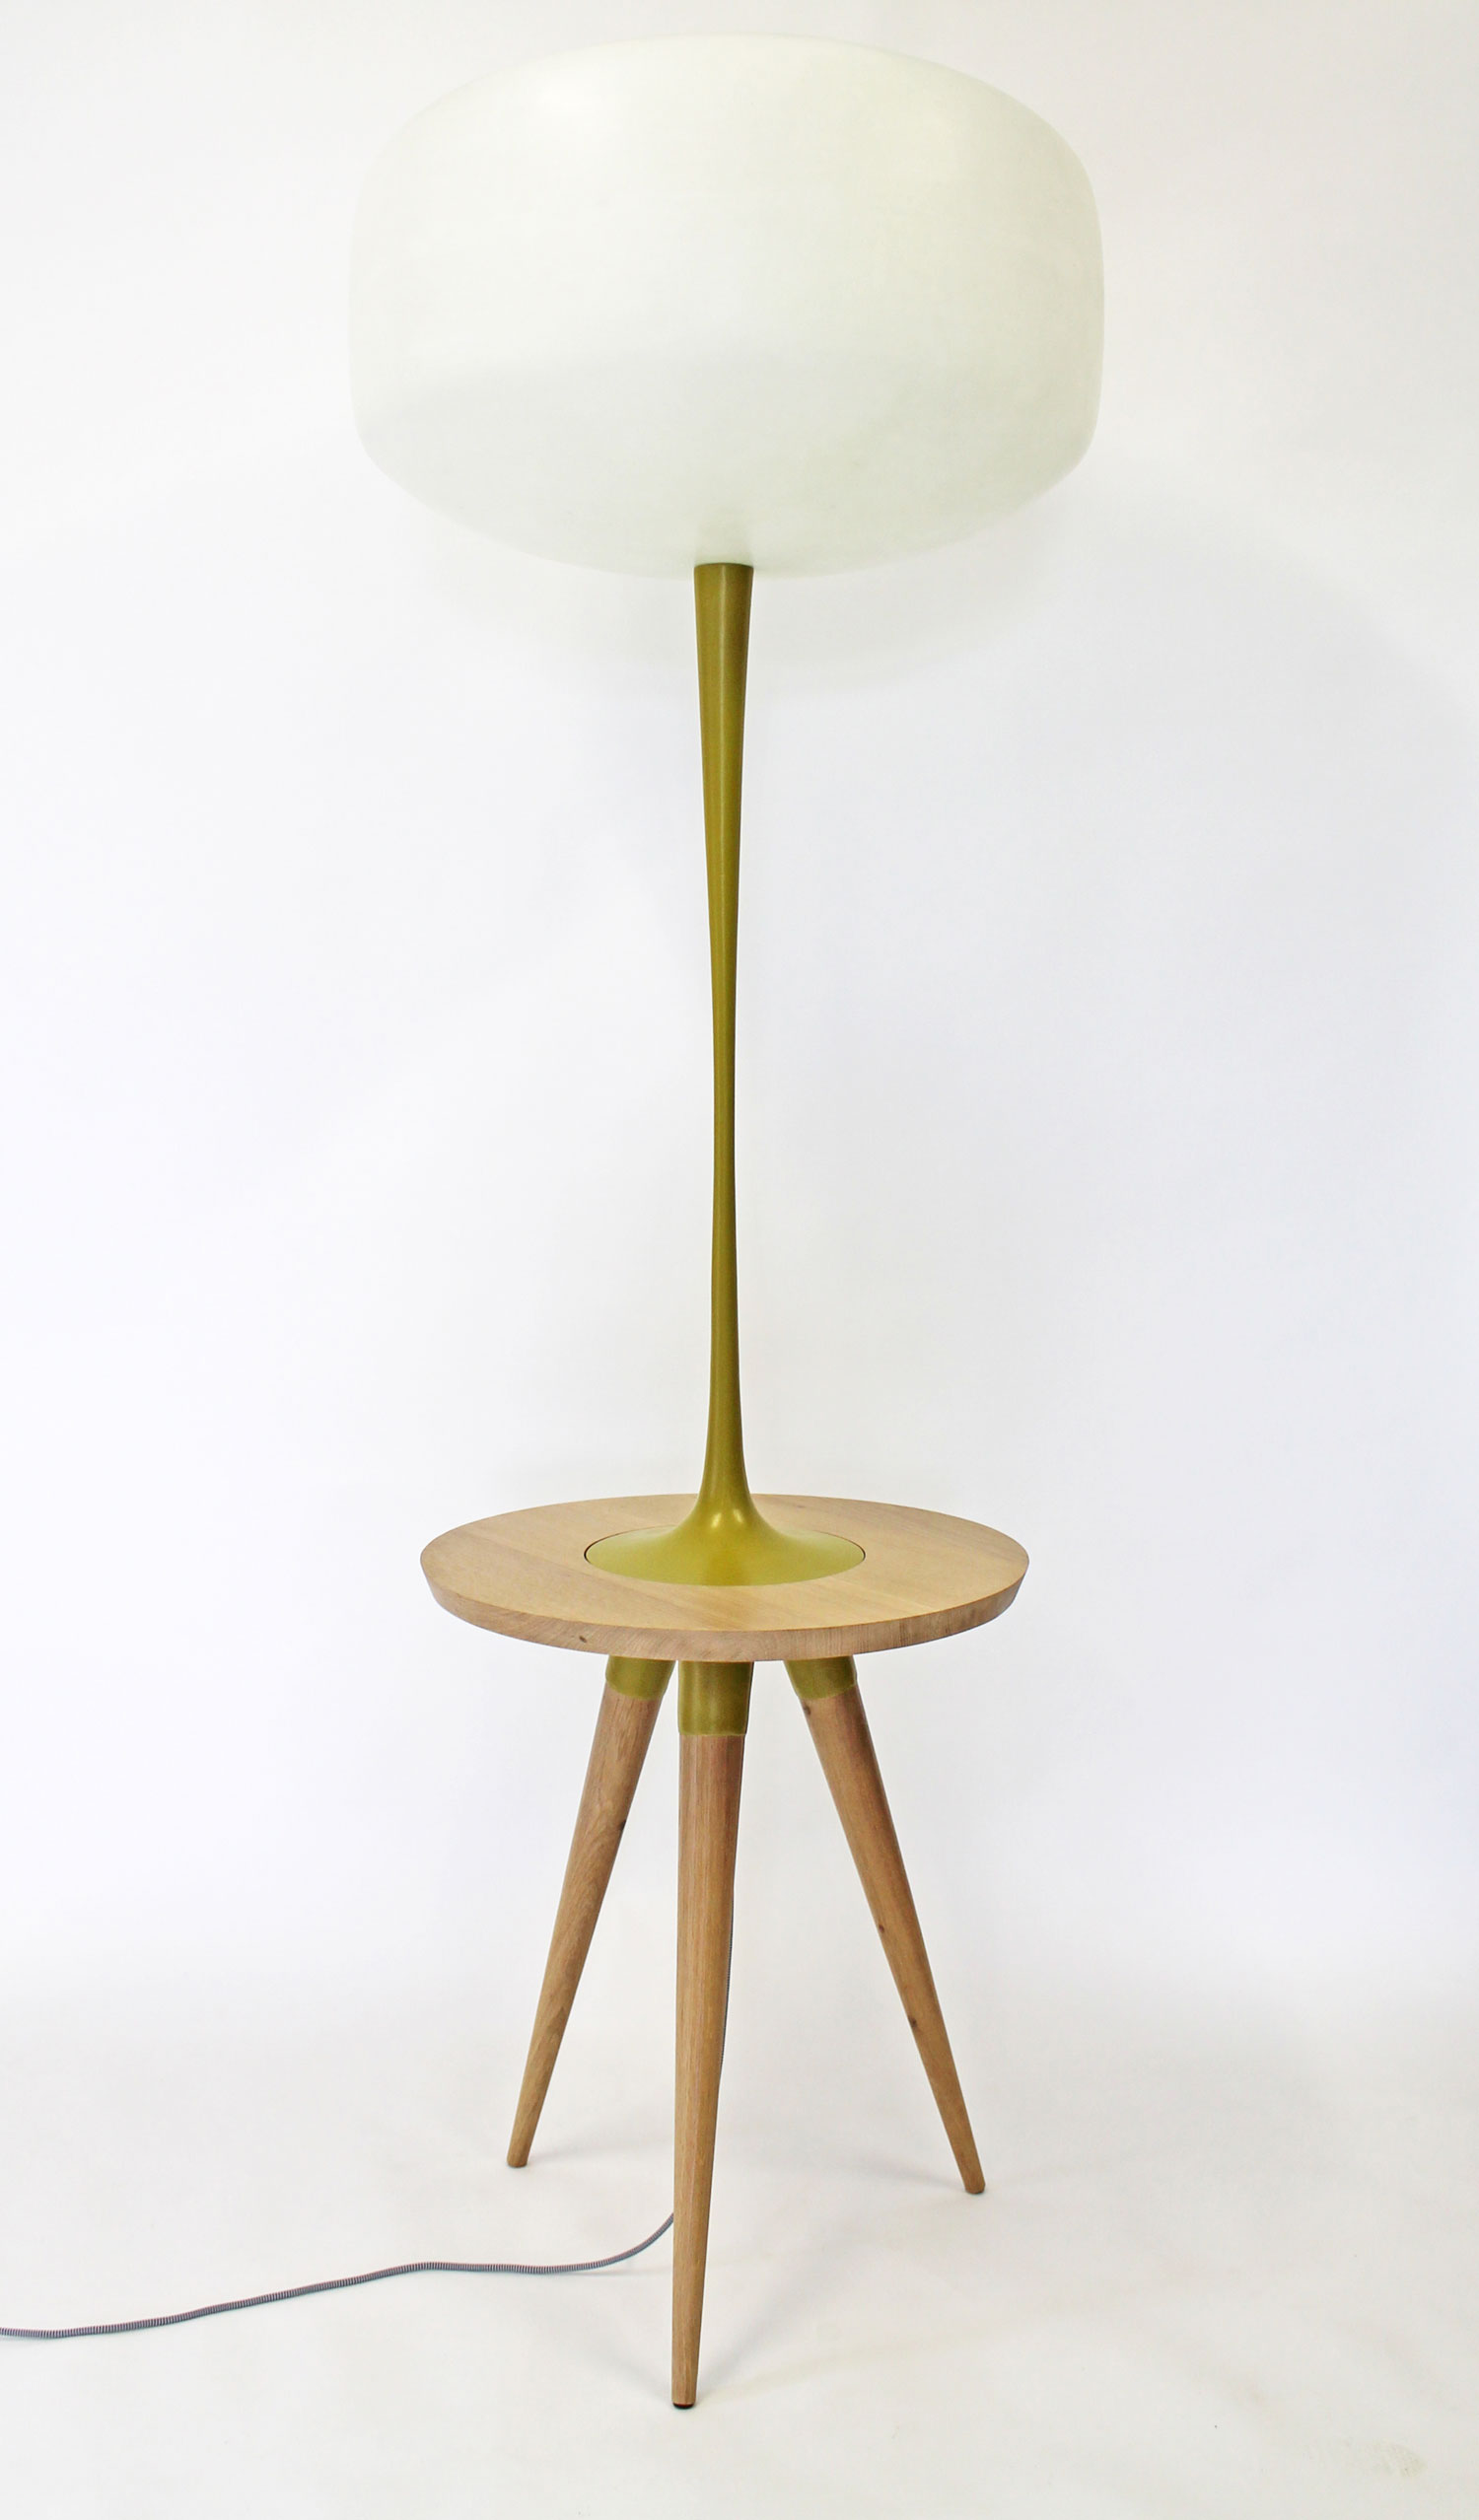 Mandarine Lamp by Binôme at Design Days Dubai 2014 | Yellowtrace